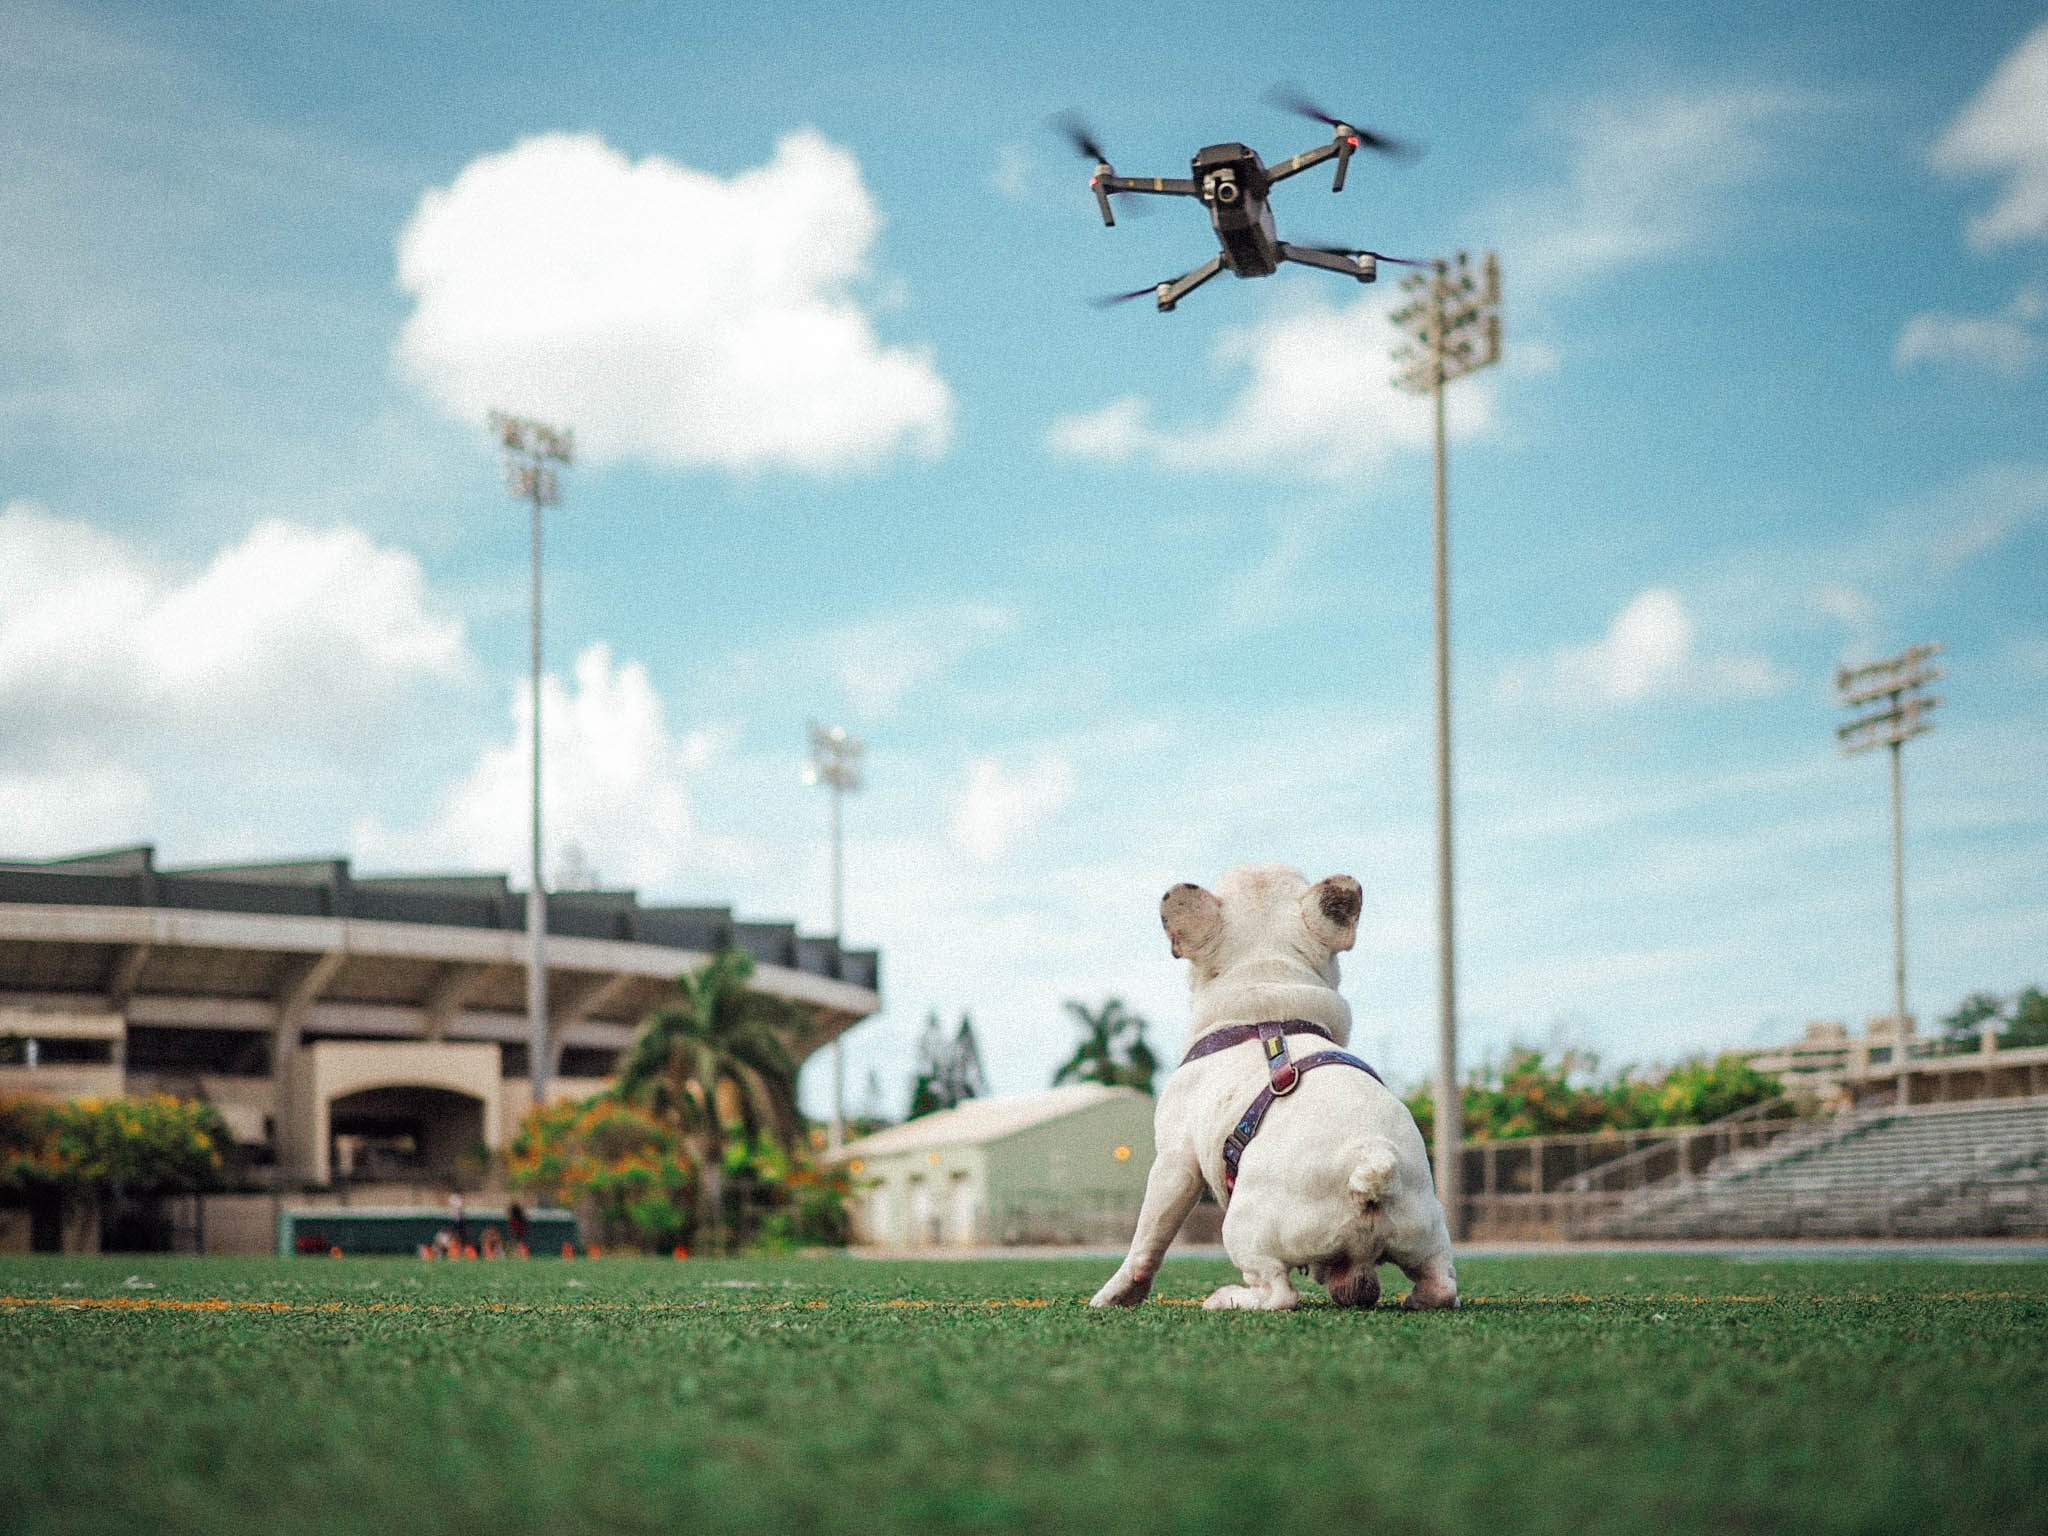 short-coated white dog staring at flying drone